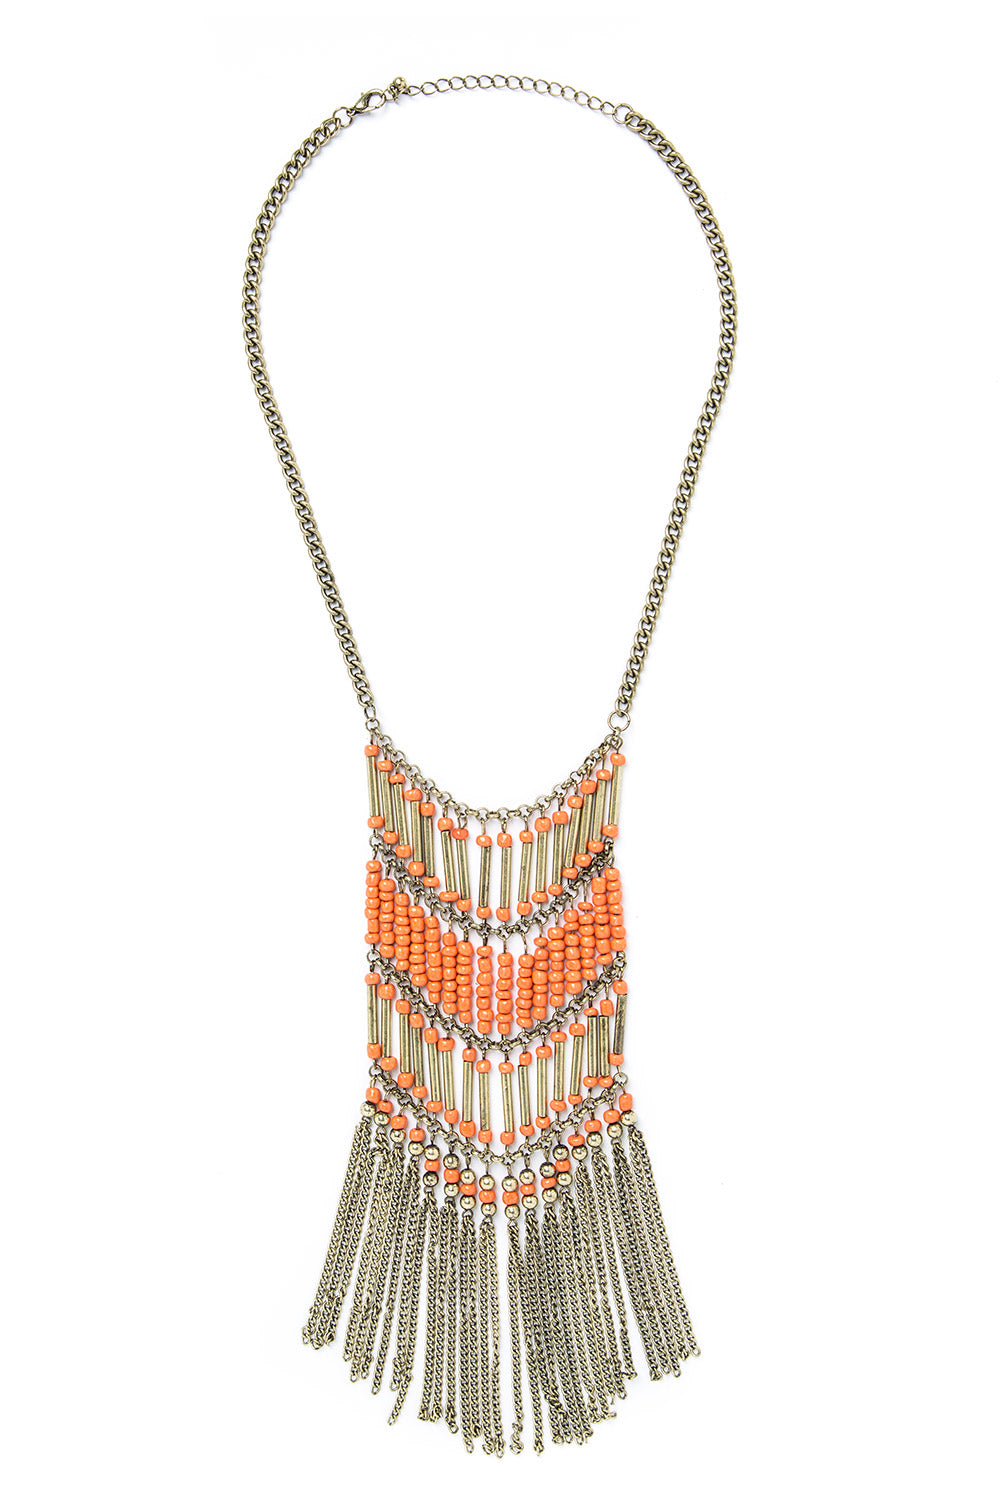 Type 3 Tribal Princess Necklace